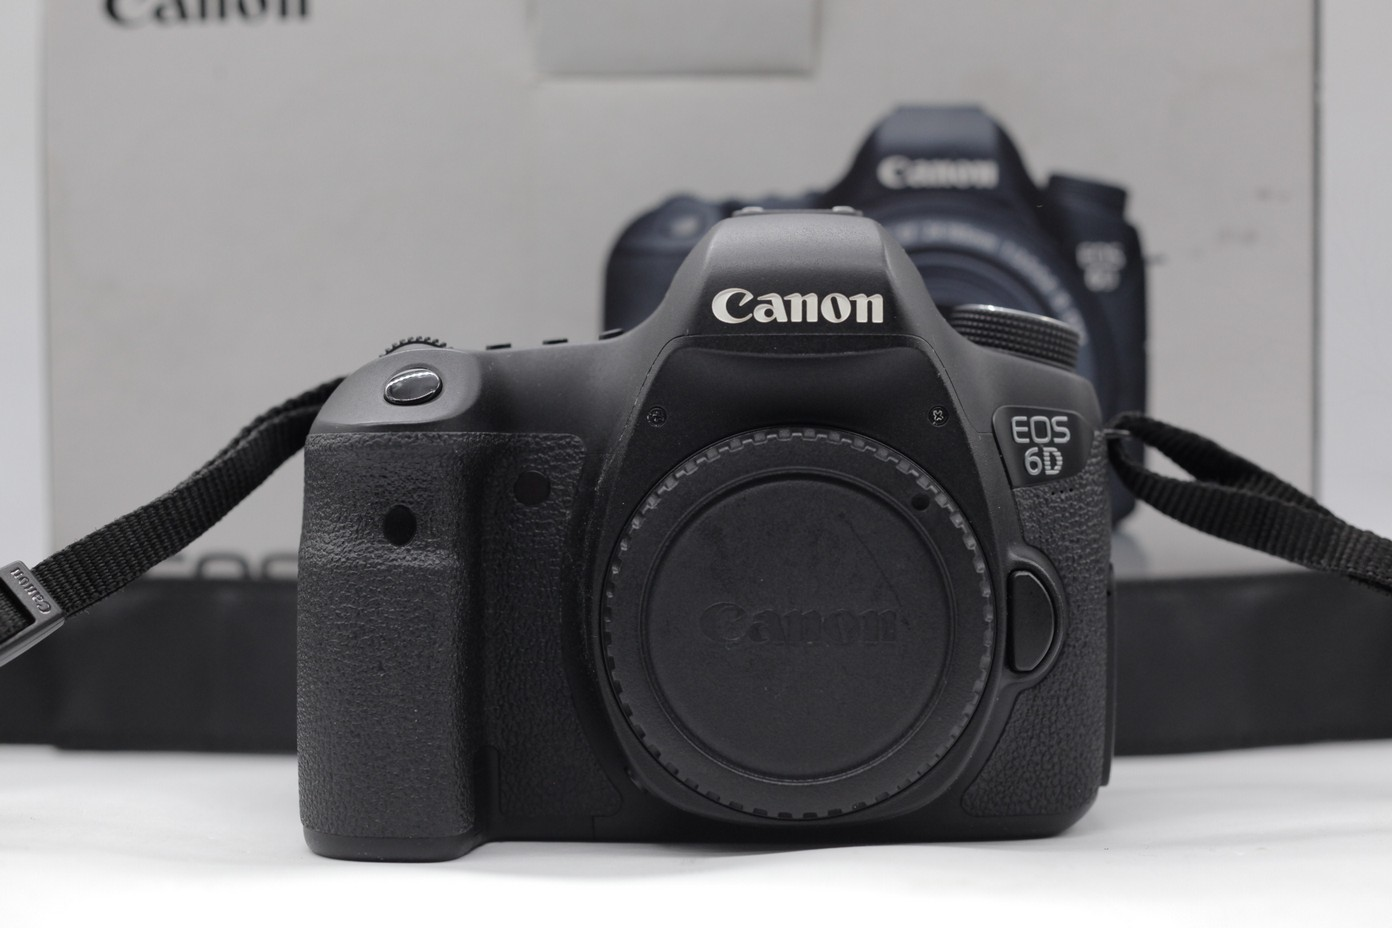 Used - Canon EOS 6D (SC 10k) (Body Only)